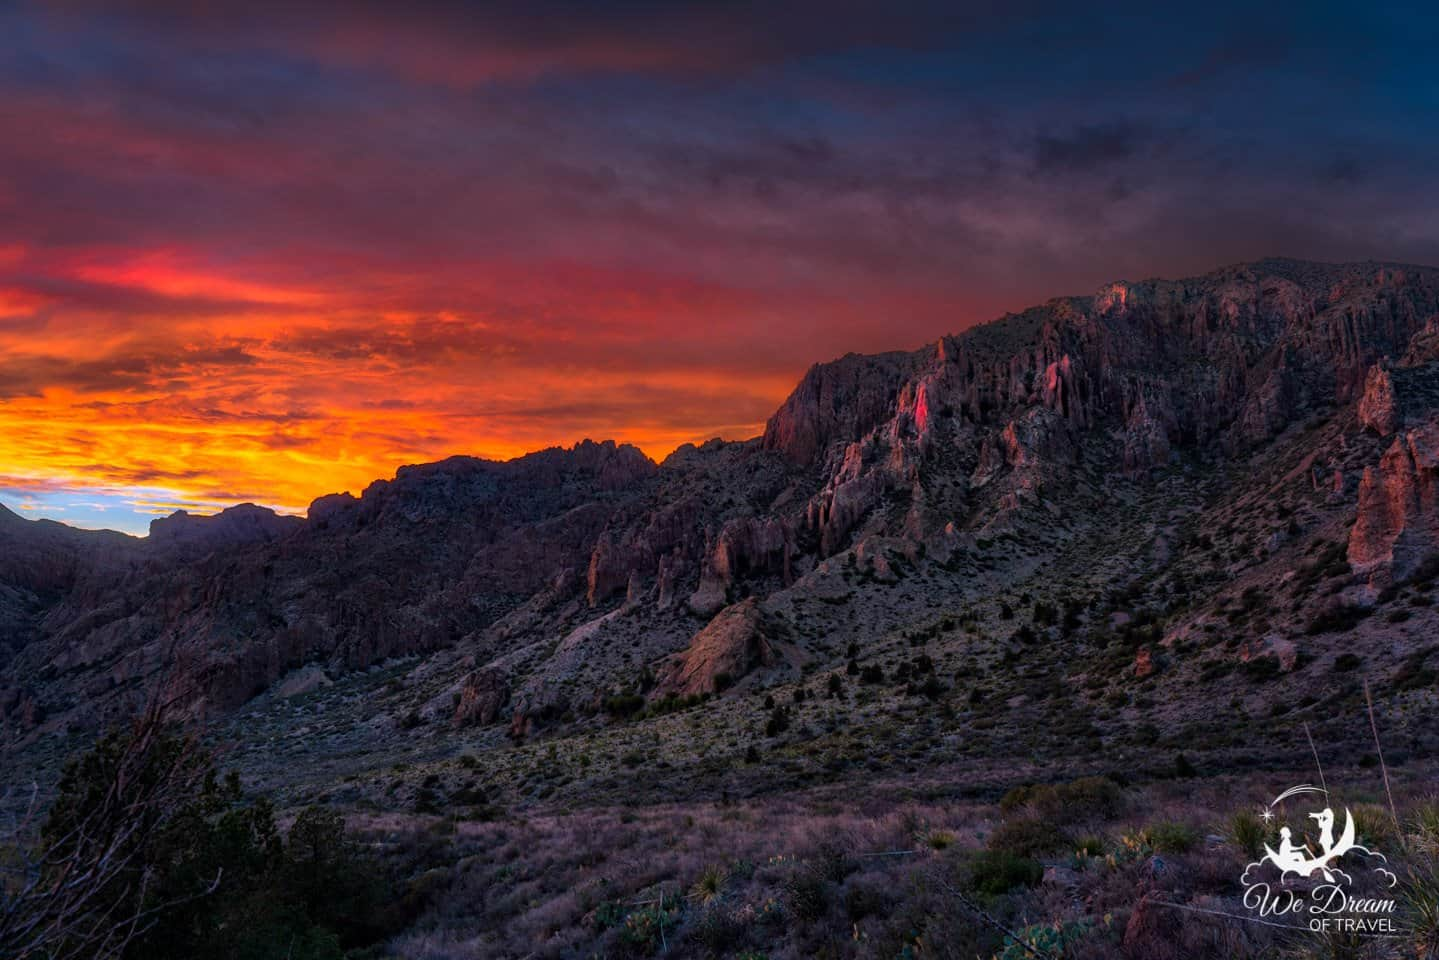 The sky catches fire in this picture of the Chisos Mountains in Big Bend.